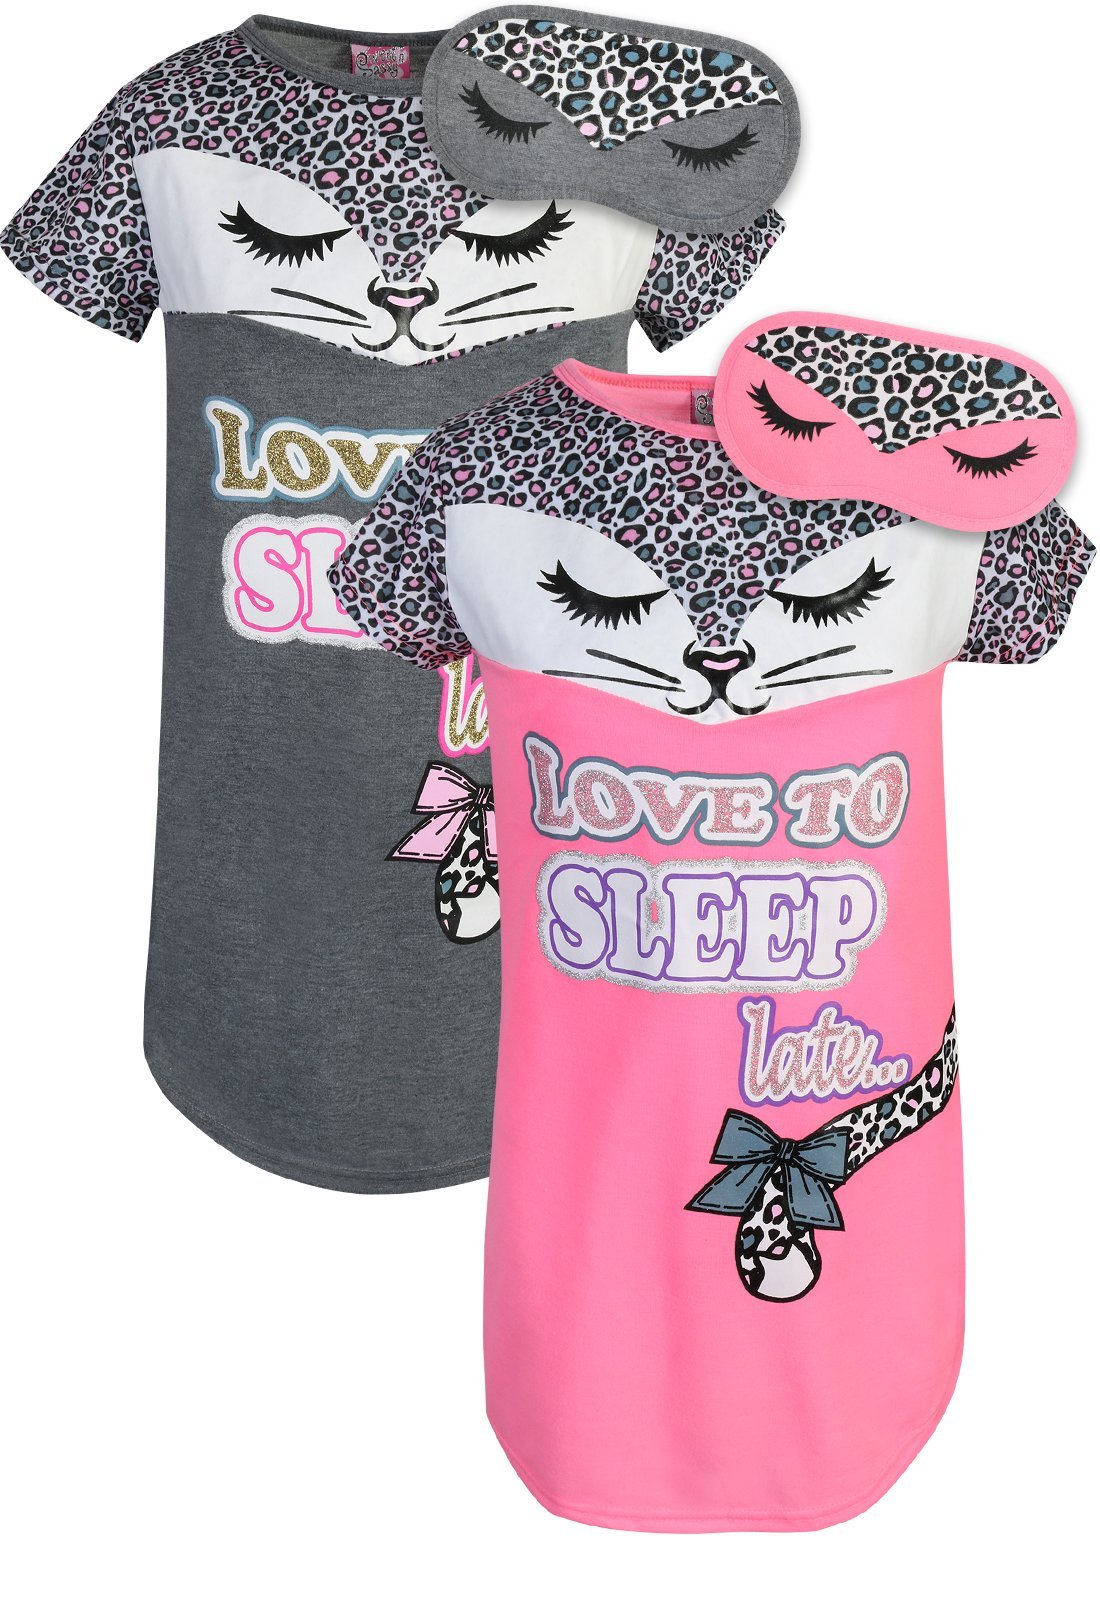 Sweet & Sassy Girls Short Sleeve Nightgown Pajama with Eye Mask (2 Pack) Love to Sleep, Size 12'